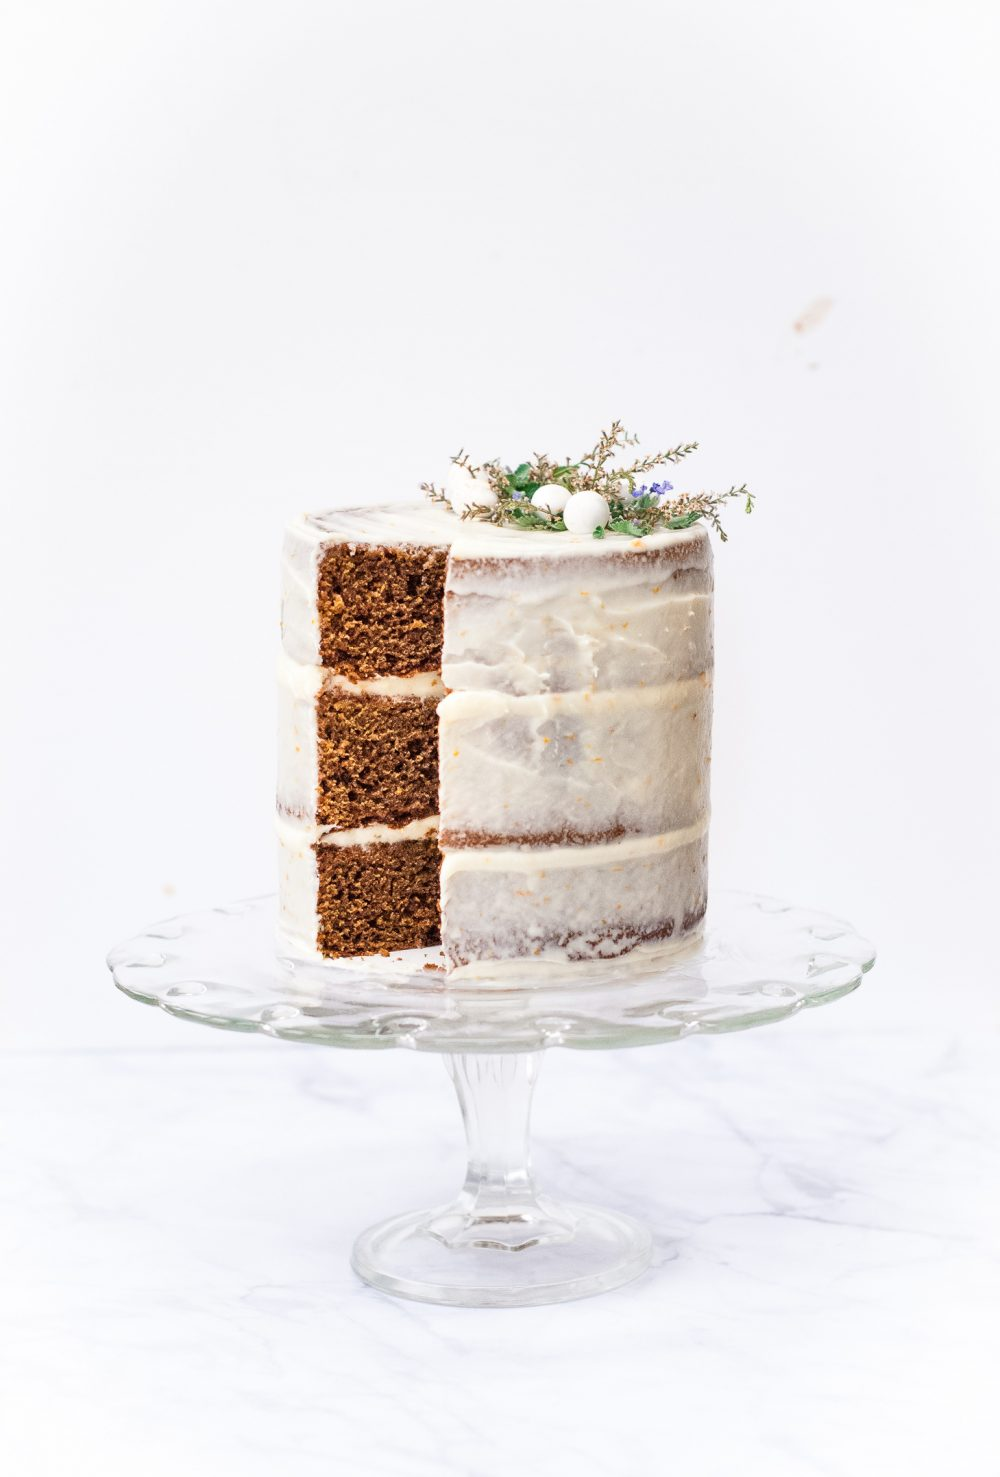 Grain-Free Gingerbread Cake with Tangerine-Cream Cheese Frosting | kumquatblog.com @kumquatblog recipe